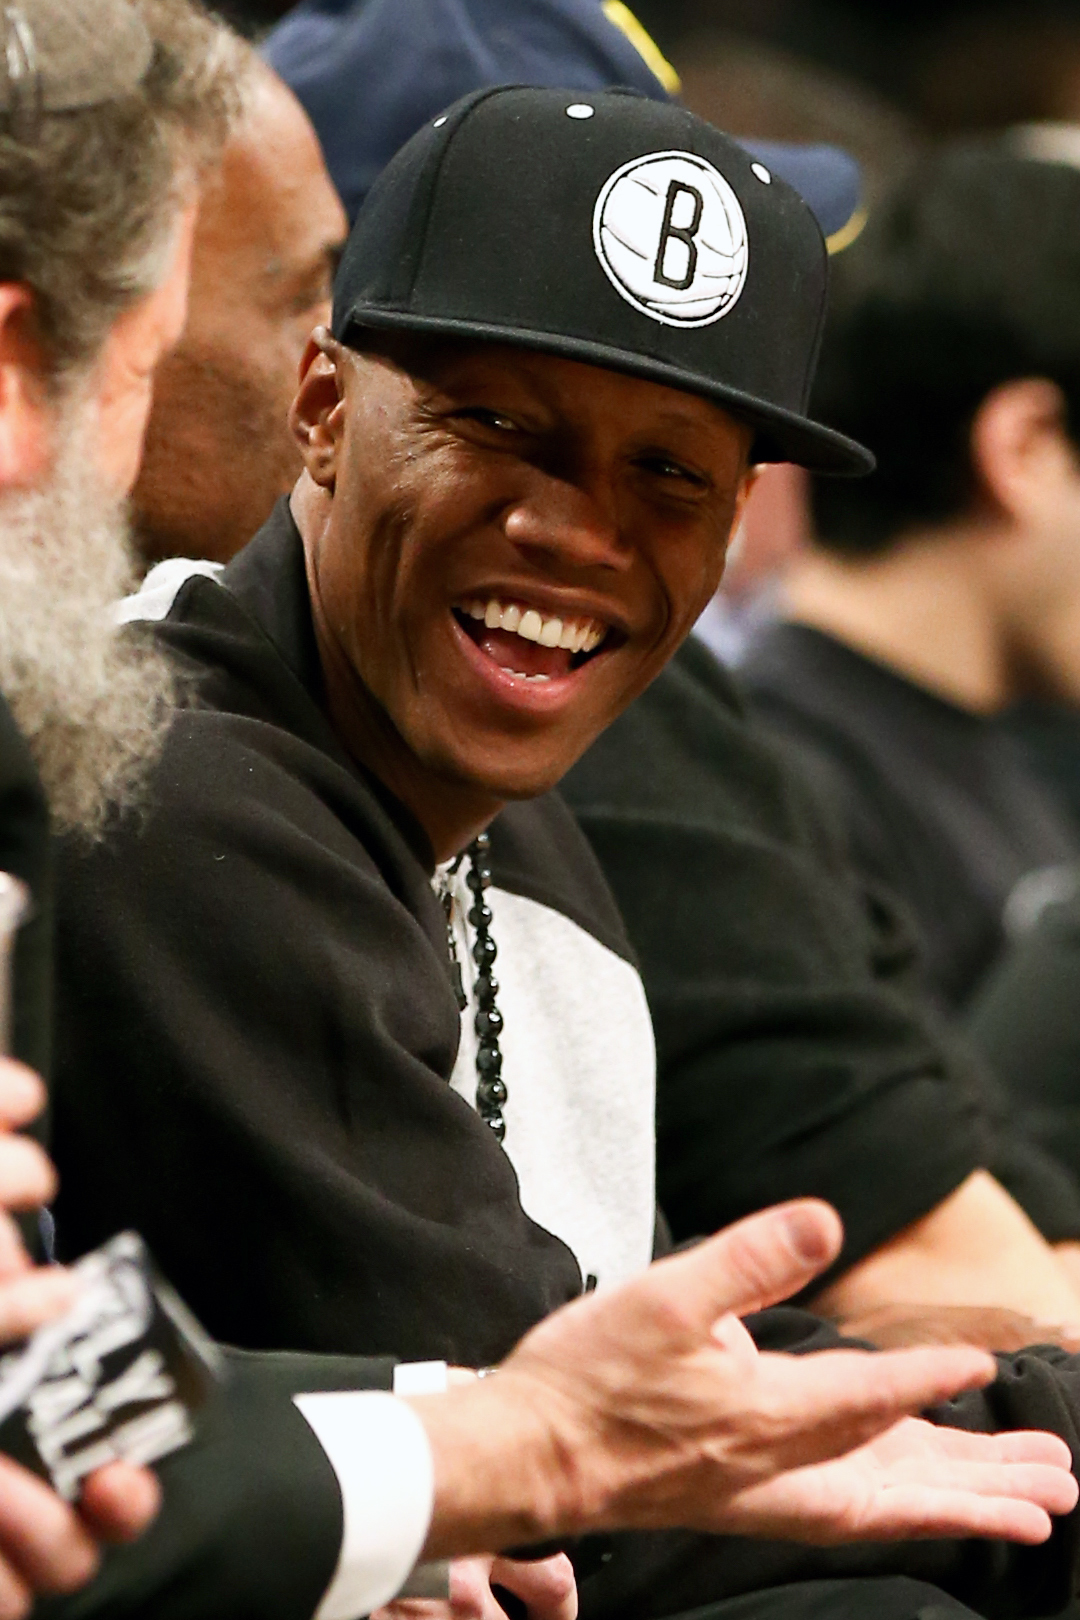 Zab Judah attends an NBA playoff game between the Brooklyn Nets and the Chicago Bulls. (USAT Sports)